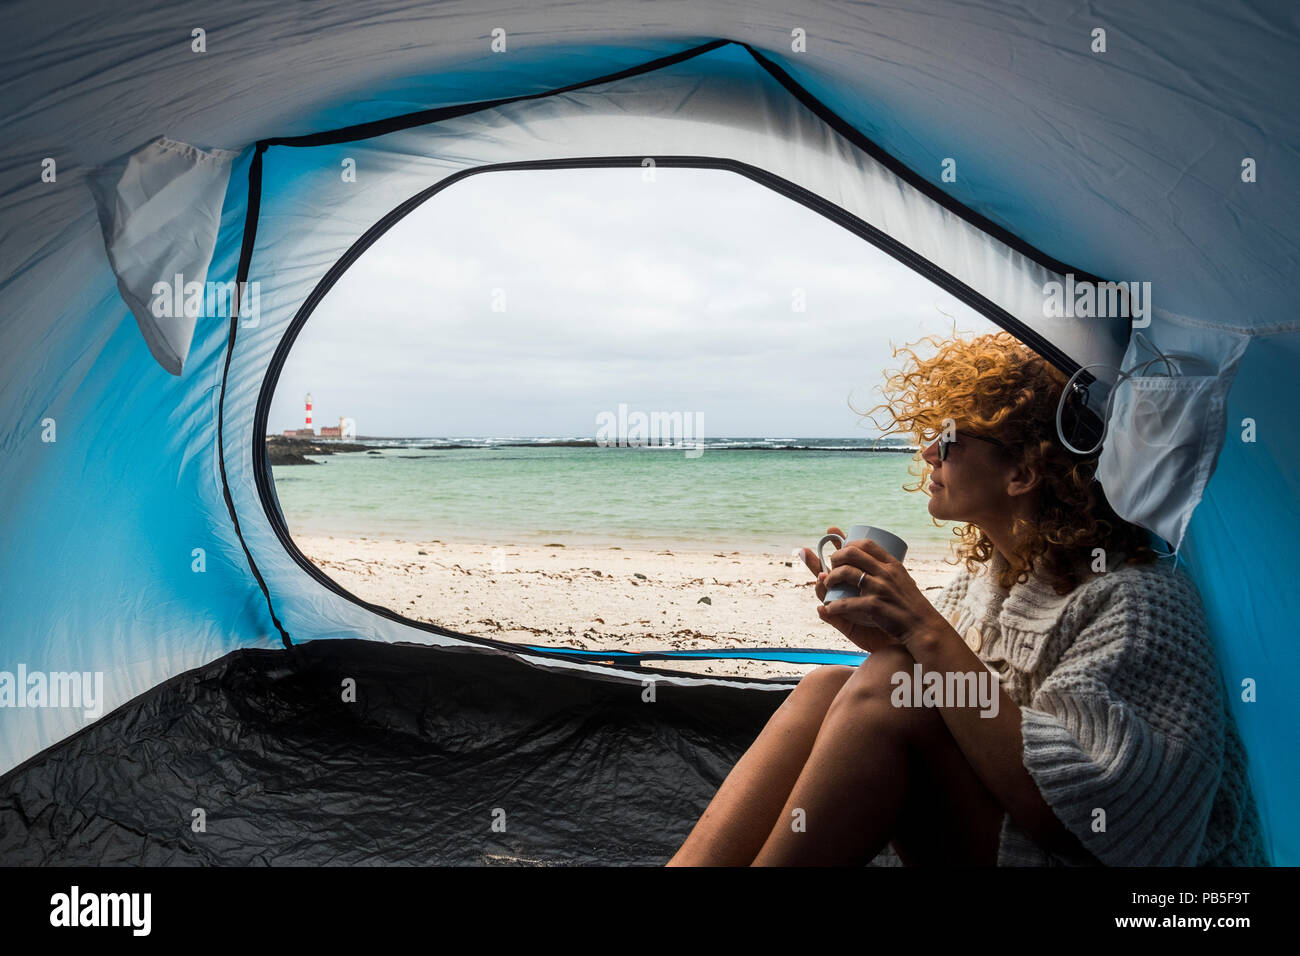 lonely beautiful woman sitting on the tent looking outside. wind on the hair and camping on the beach near the colors of water and shore. freedom and  - Stock Image